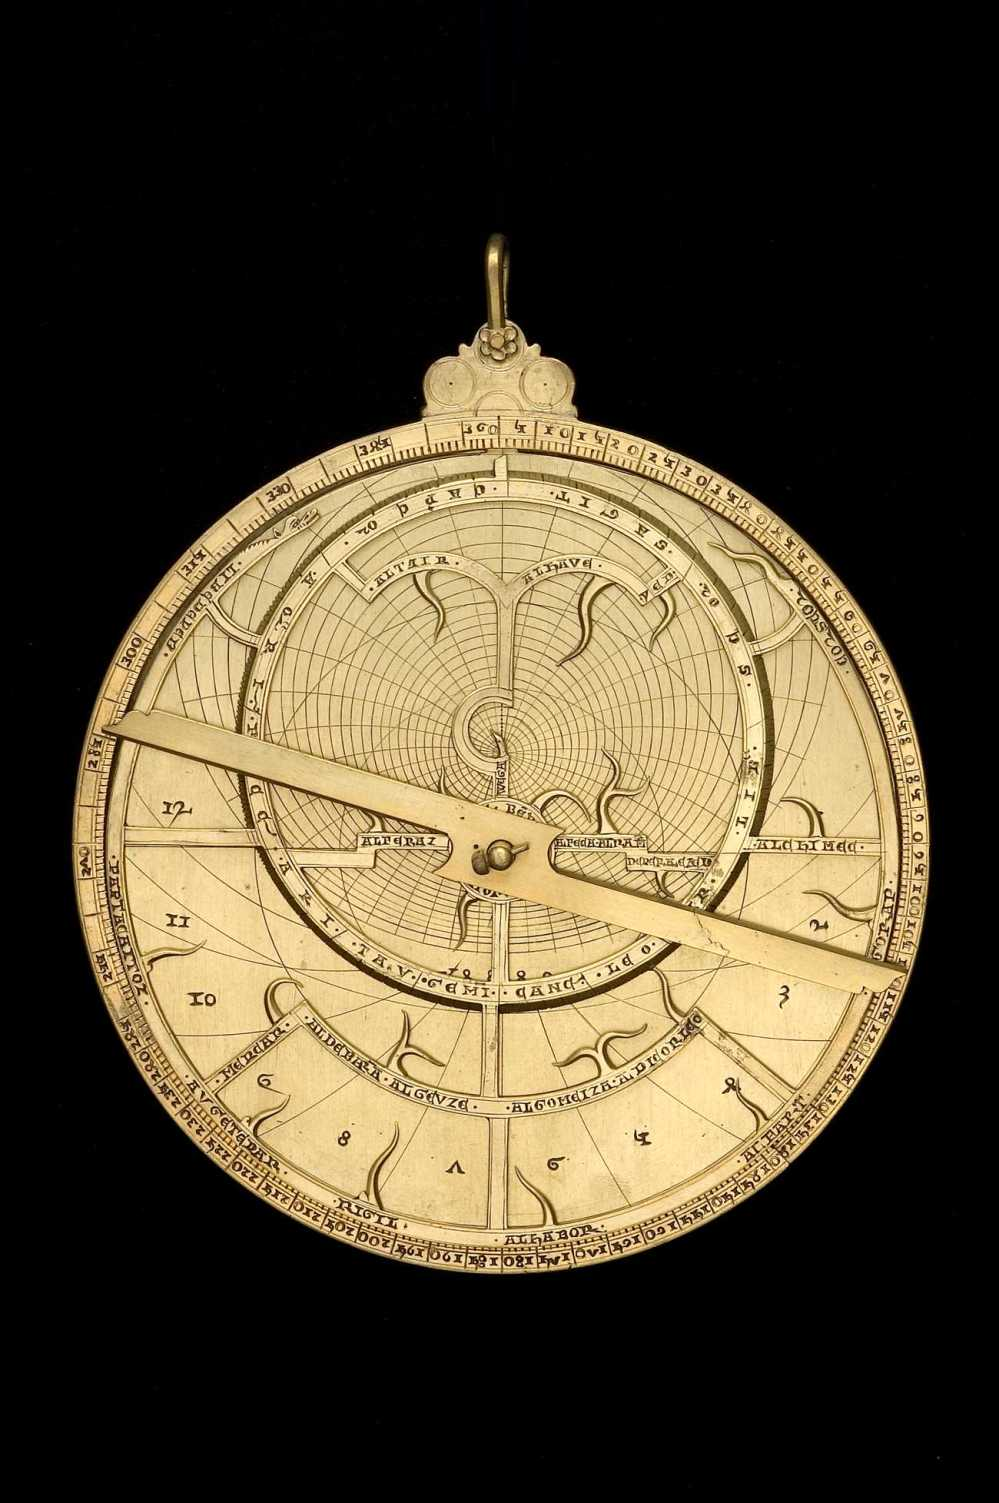 preview image for Middle Gothic Astrolabe, French?, c. 1400?